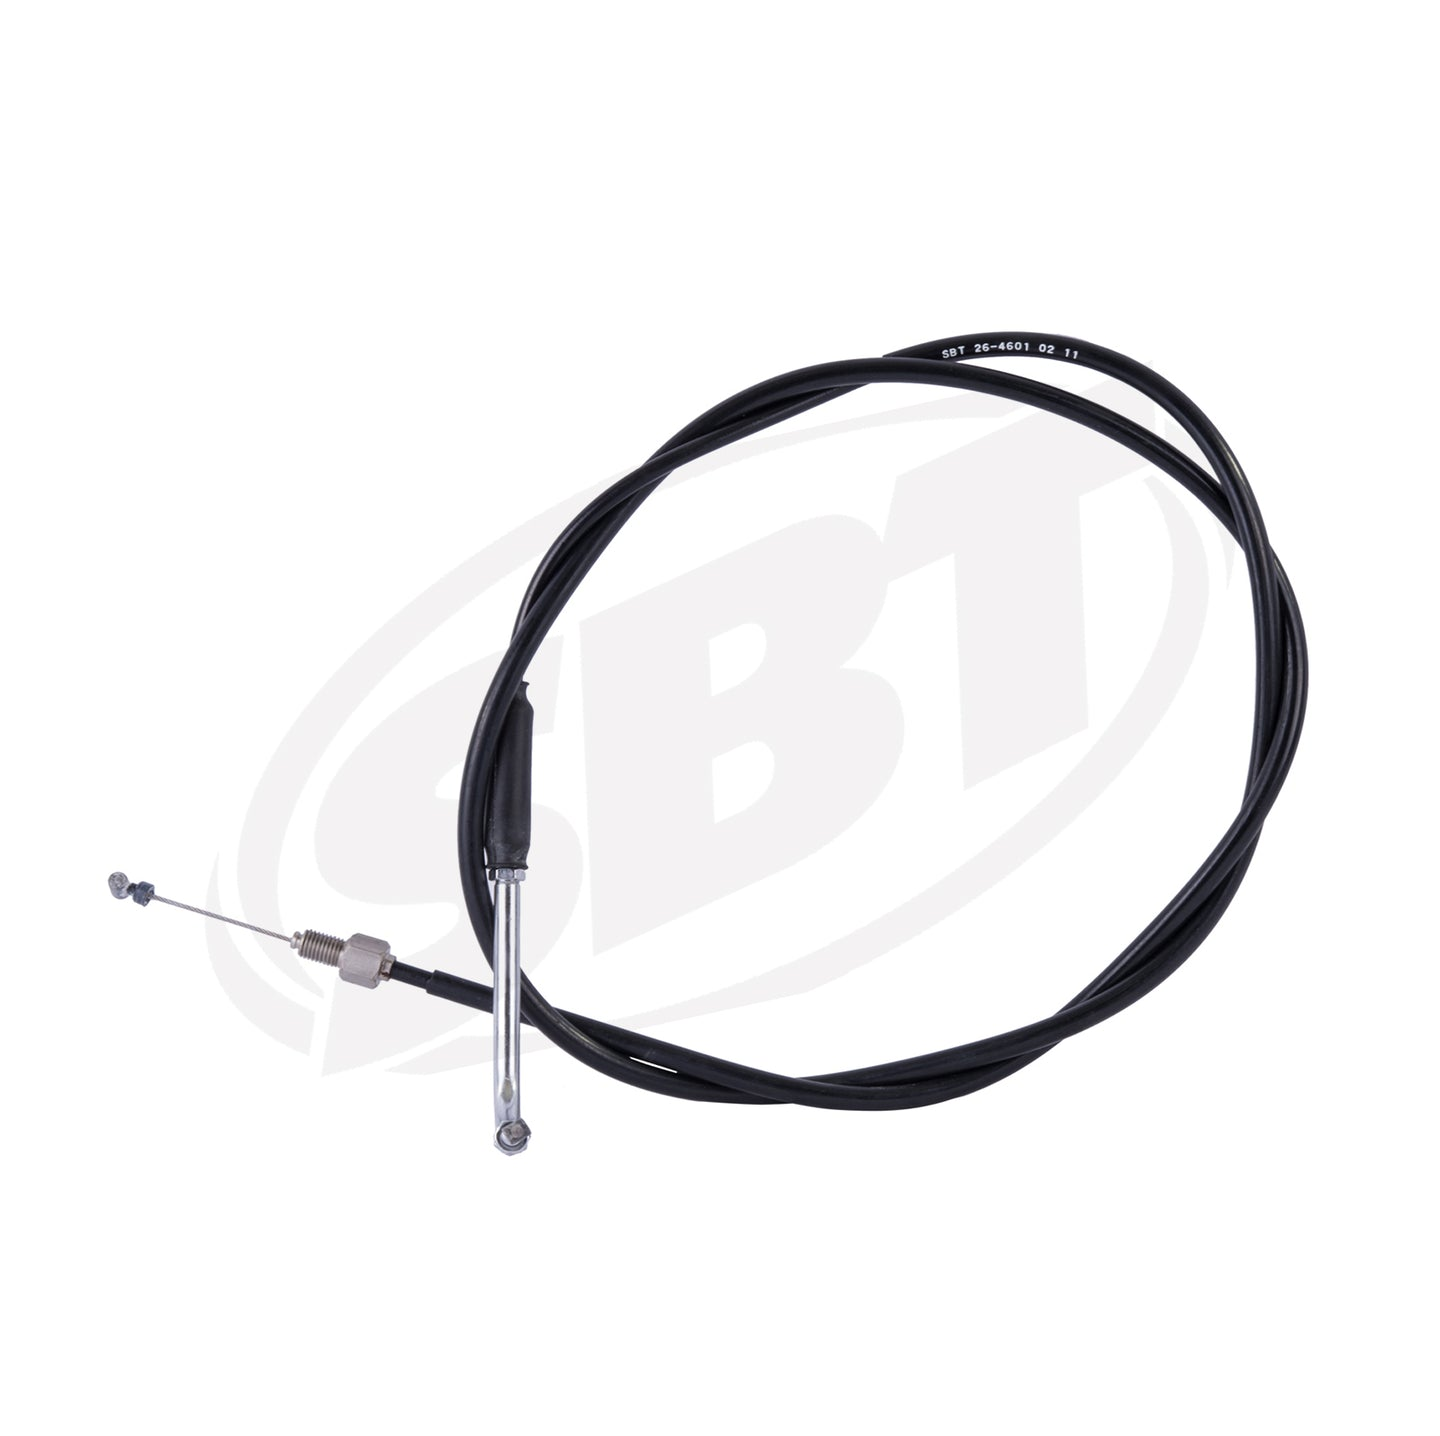 SBT Honda Throttle Cable Aquatrax F-12 /Aquatrax F-12X /Aquatrax R-12 /Aquatrax R-12X 17910-HW1-670 2002 2003 2004